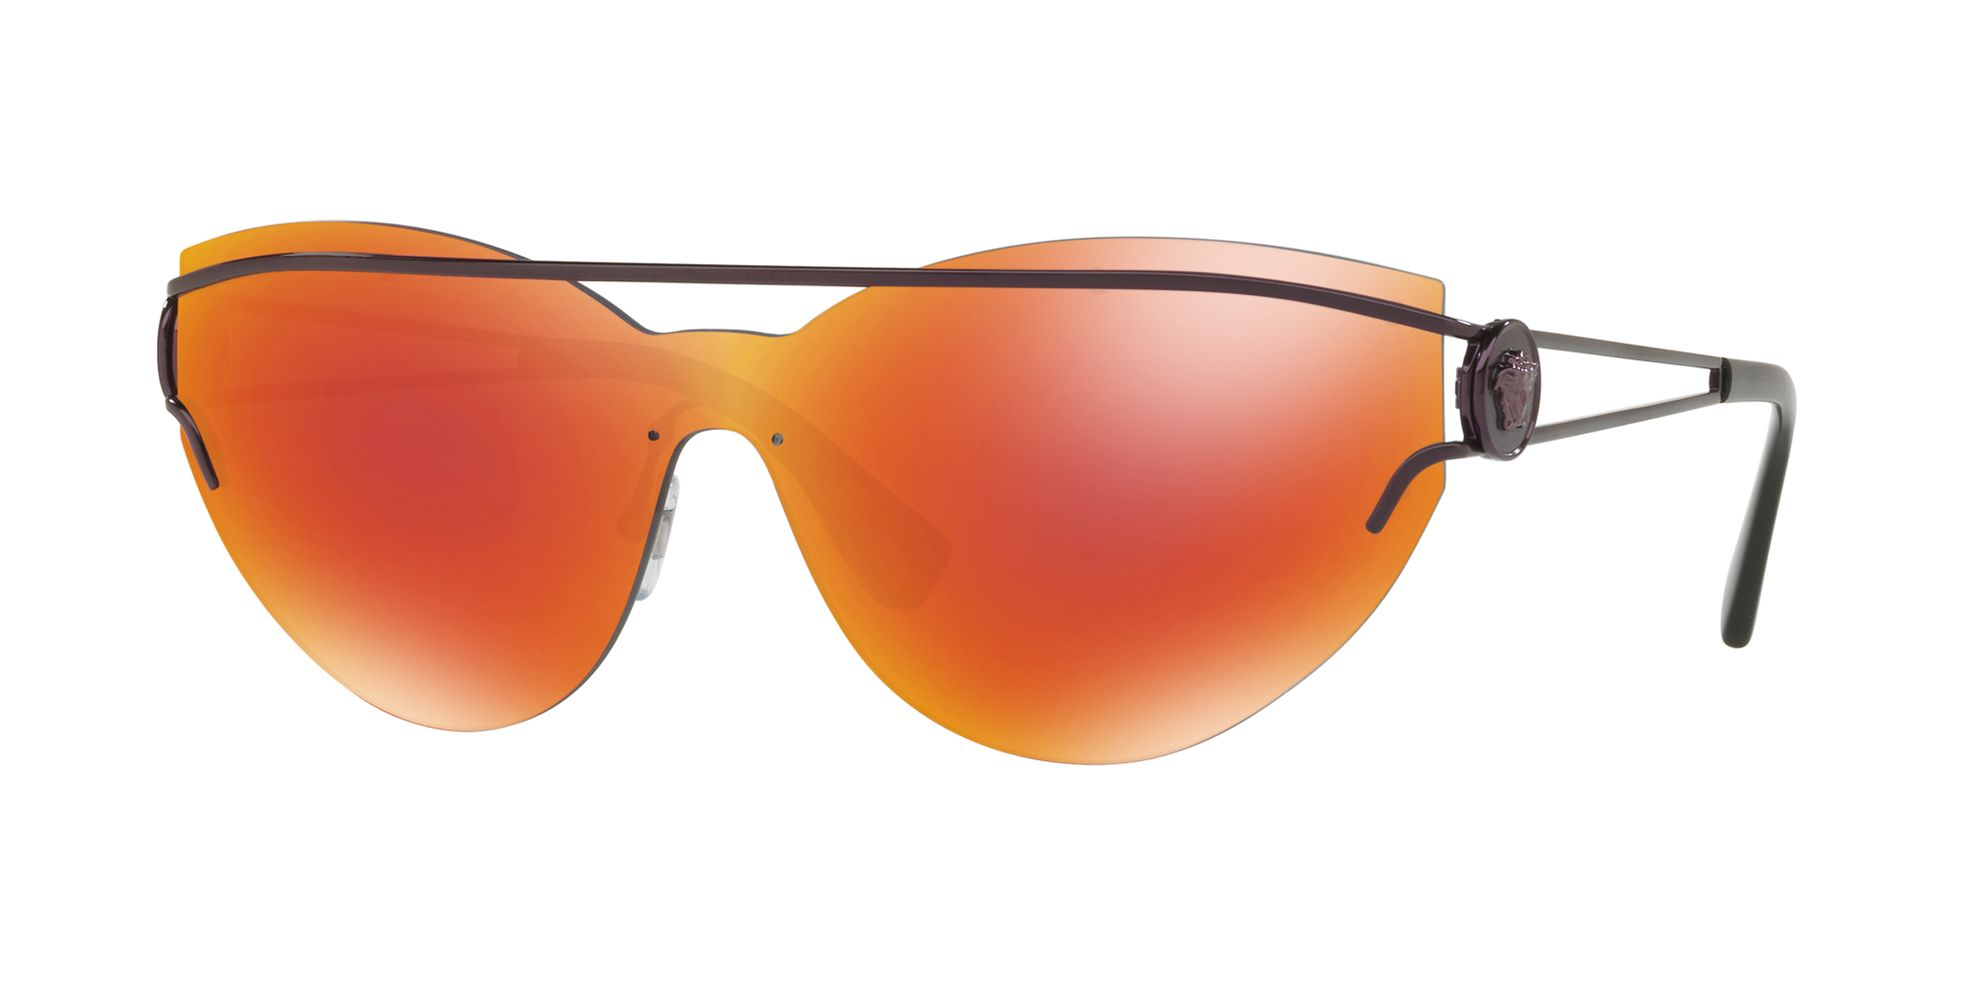 e00499a99b5d Vision In Style - Choose from various designer sunglasses ...